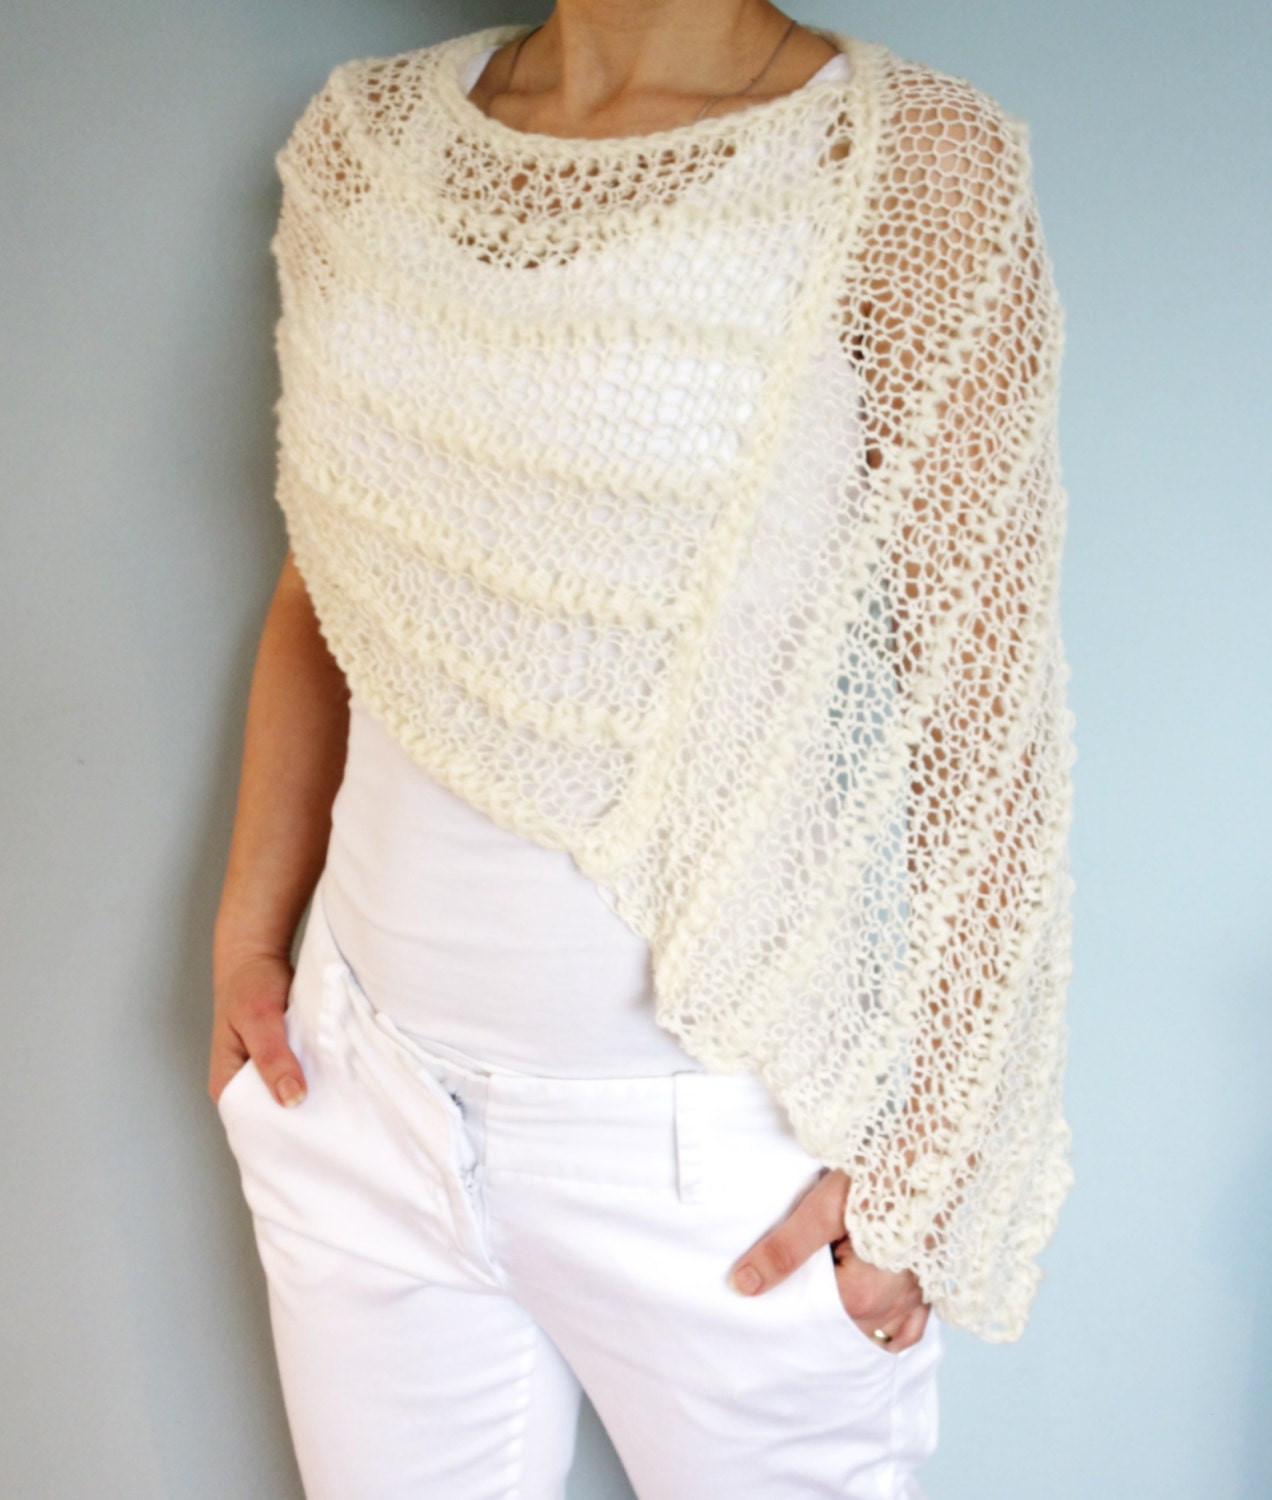 Lace Poncho Knitting Pattern Gallery - handicraft ideas home decorating